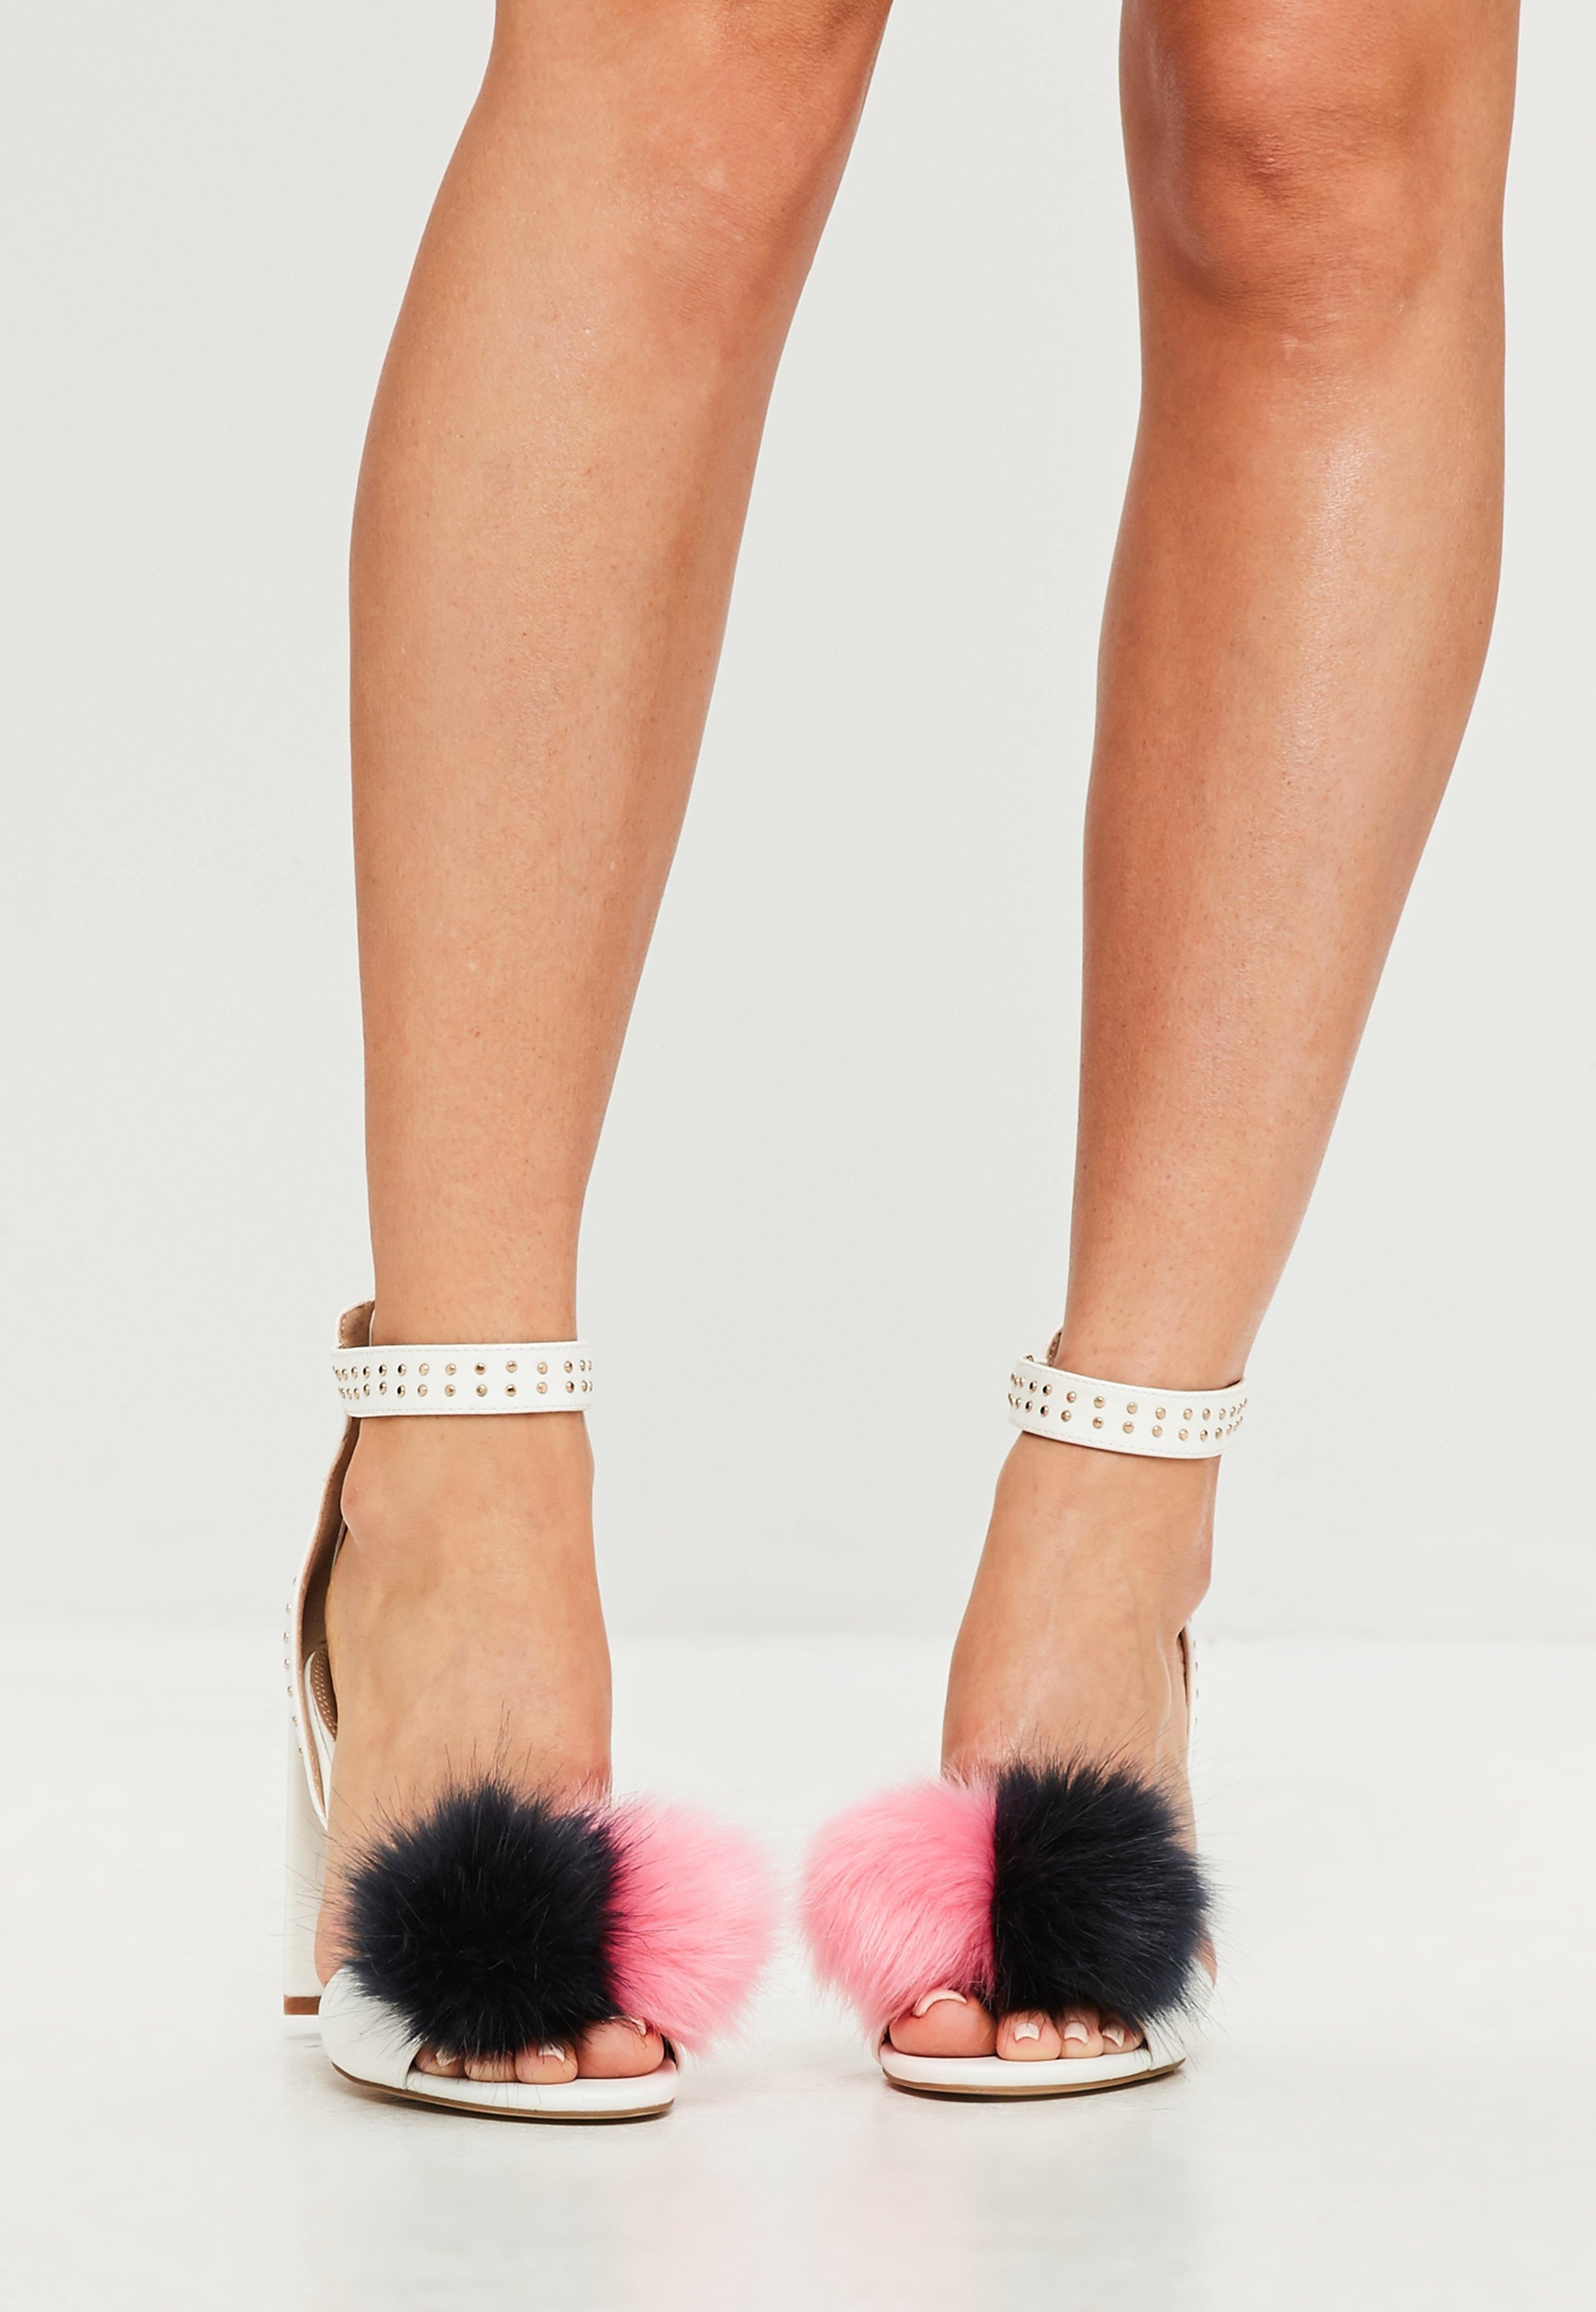 8031e7efd8f9 Lyst - Missguided White Pom Pom Block Heeled Sandals in White